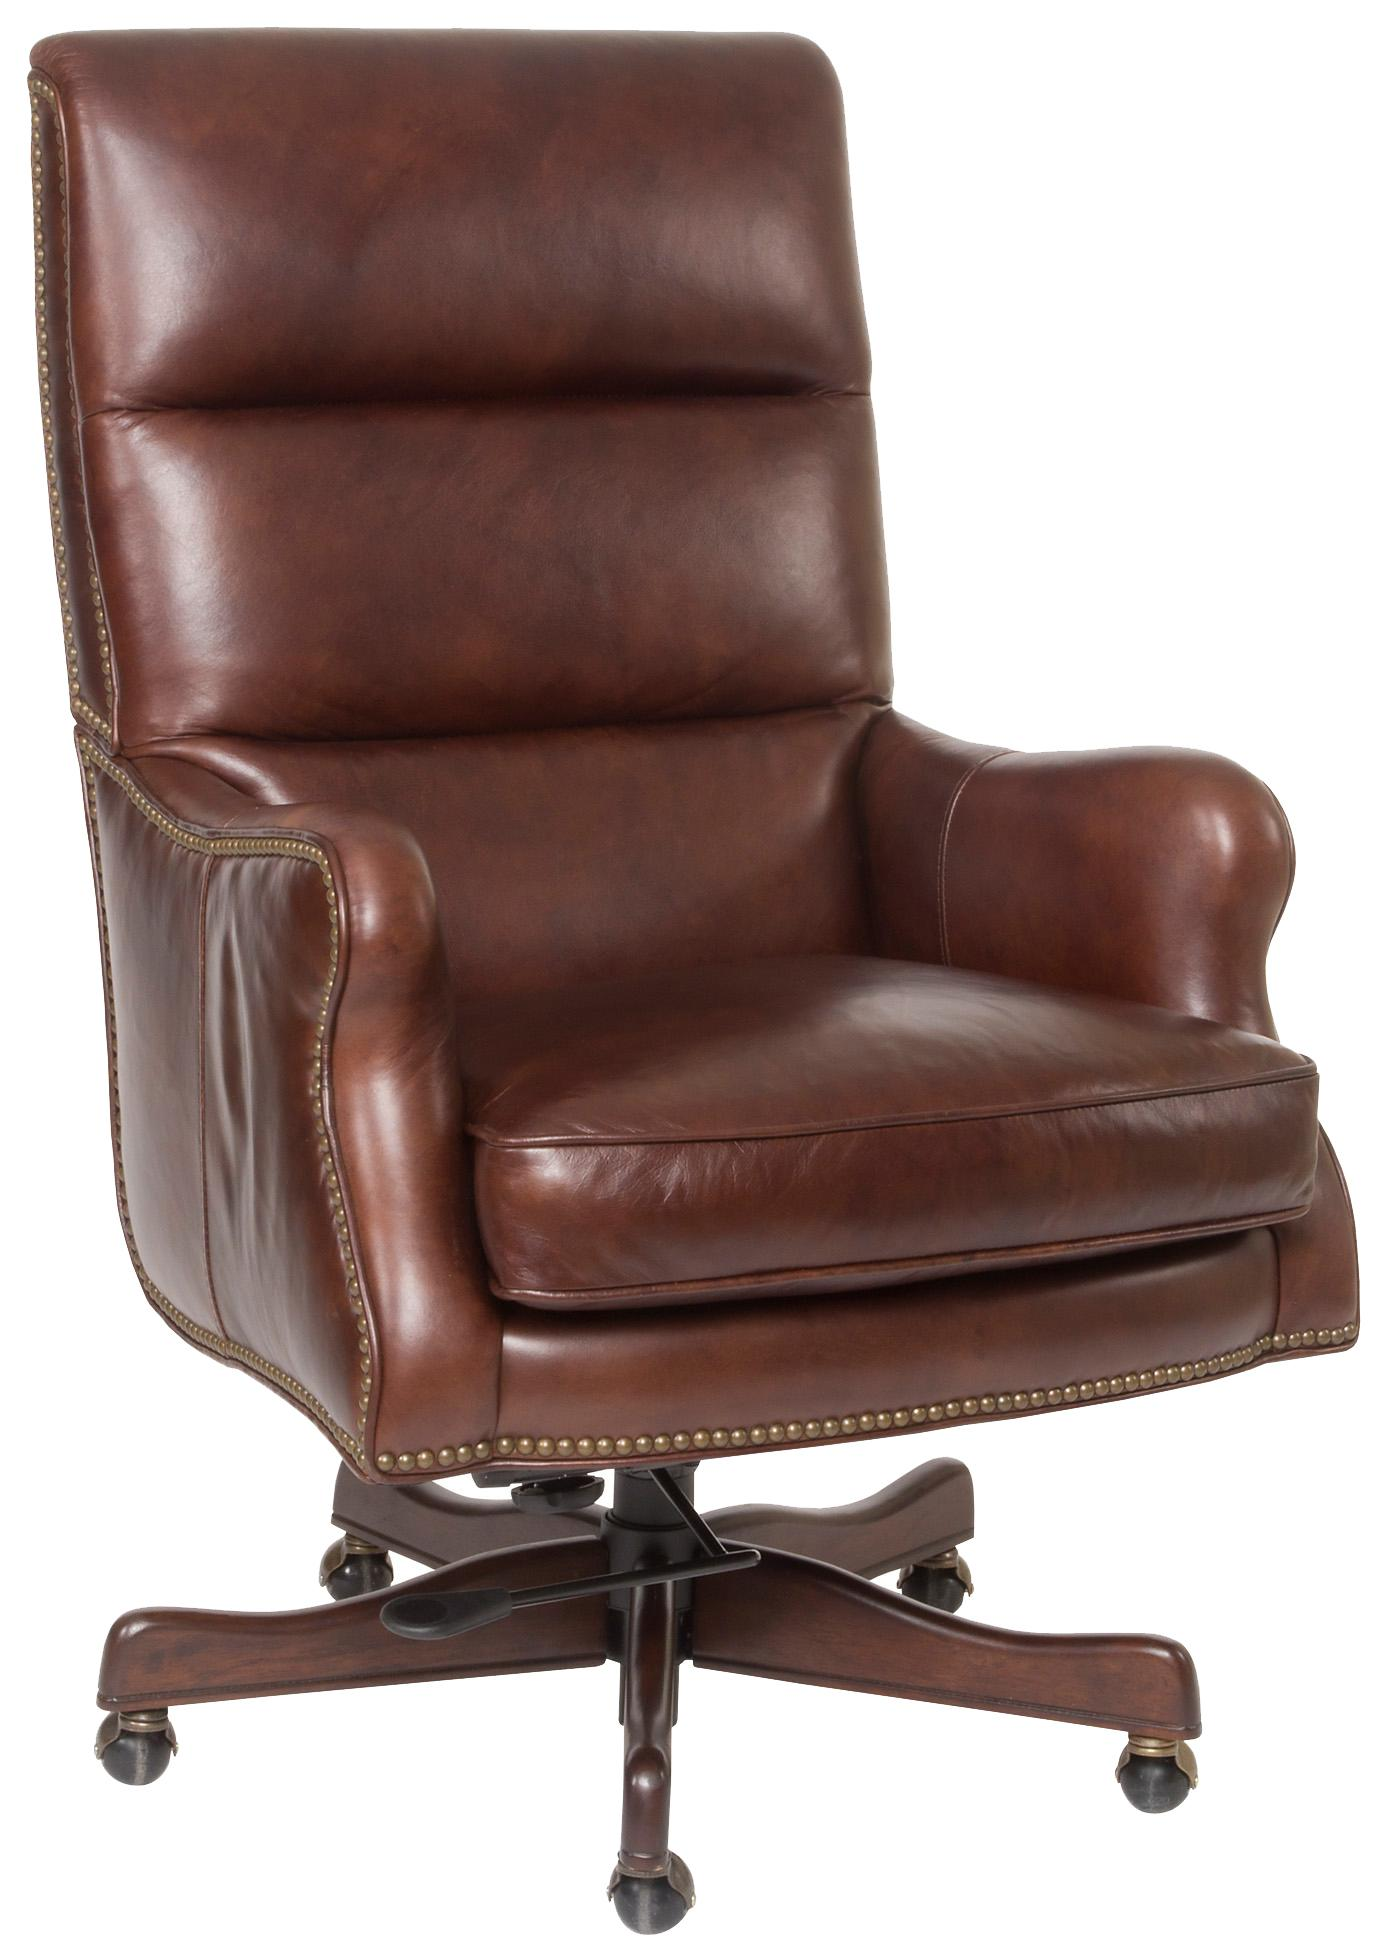 Executive Seating Classic Styled Leather Desk Chair with Nail Head Trim by  Hooker Furniture at Dunk & Bright Furniture